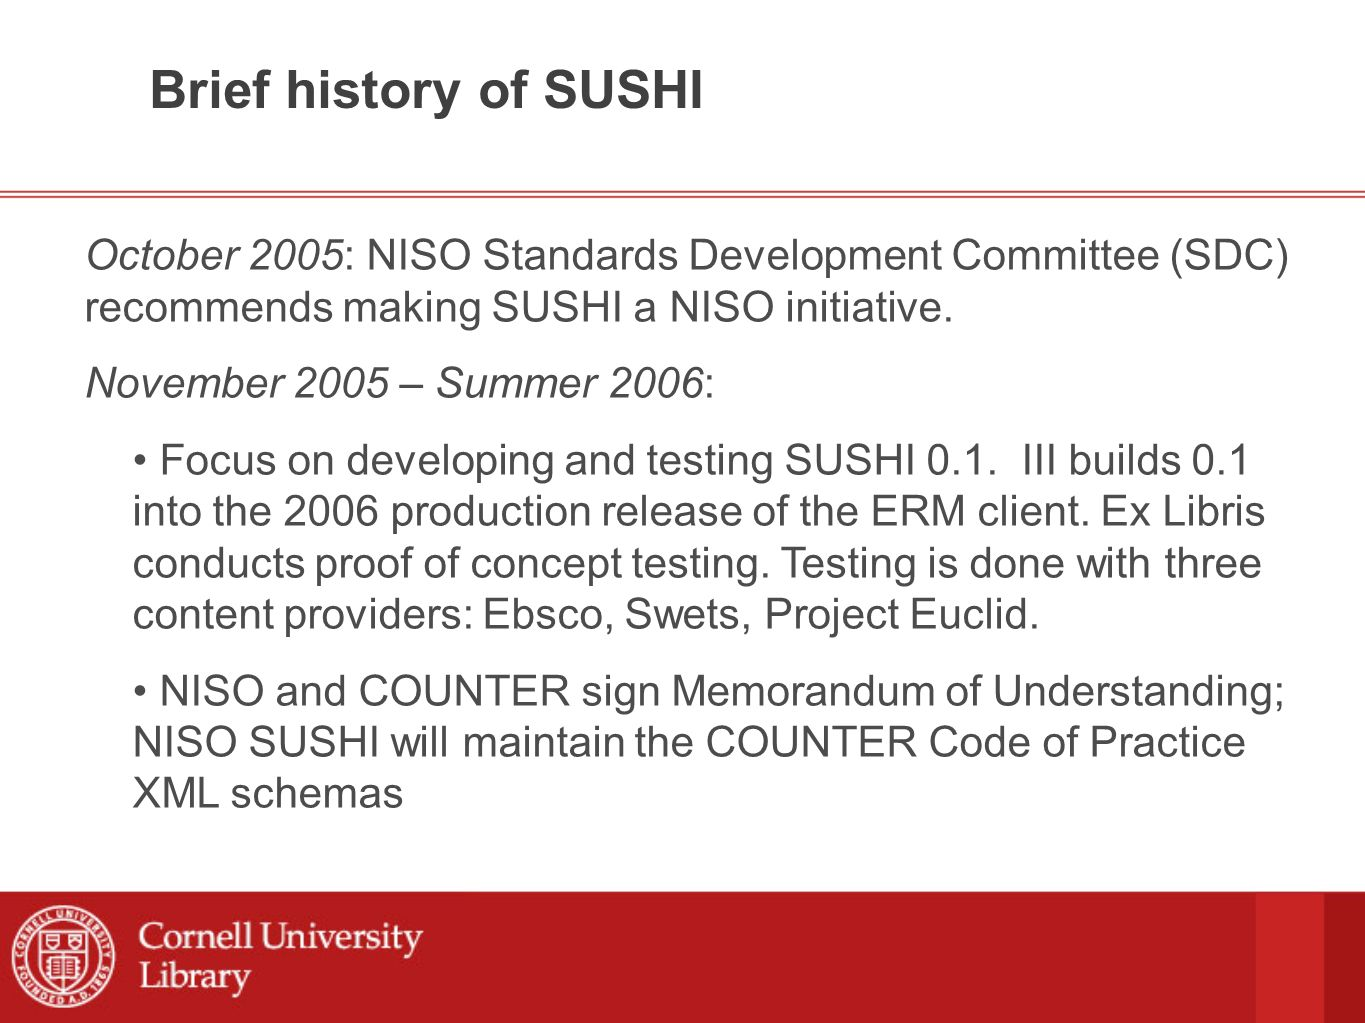 Brief history of SUSHI June 2005, ALA Annual Conference in Chicago: Ted Fons and Adam Chandler meet with Tim Jewell (University of Washington) and Oliver Pesch (Ebsco) to discuss concept of building a protocol for exchanging COUNTER reports.